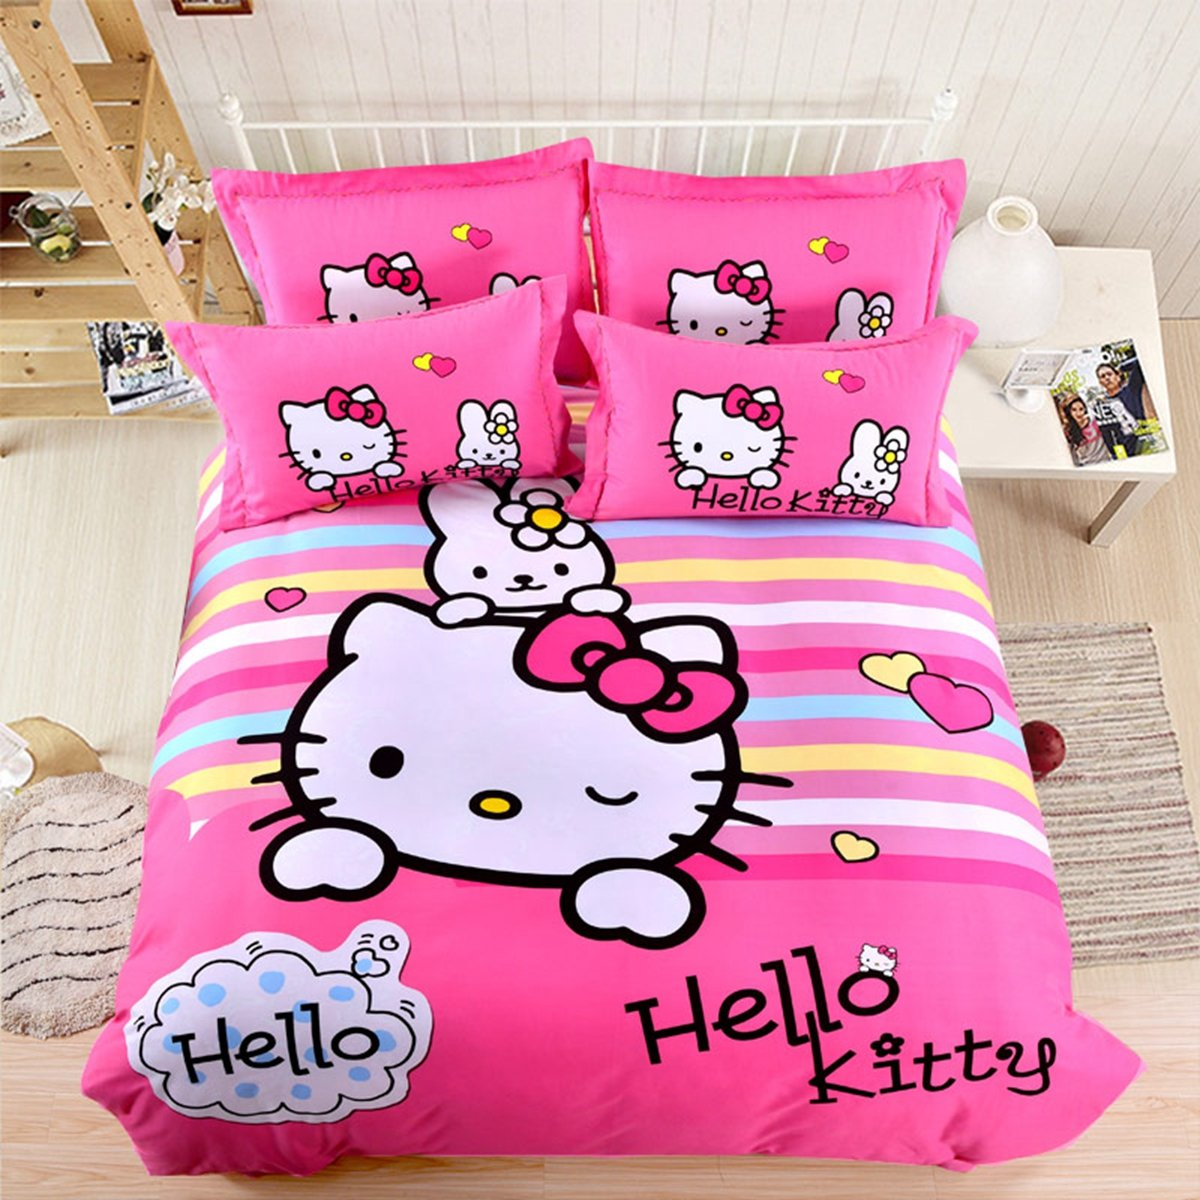 CASA 100% Cotton Brushed Kids Bedding Girls Hello Kitty Duvet Cover Set & Flat sheet,4 Piece,King